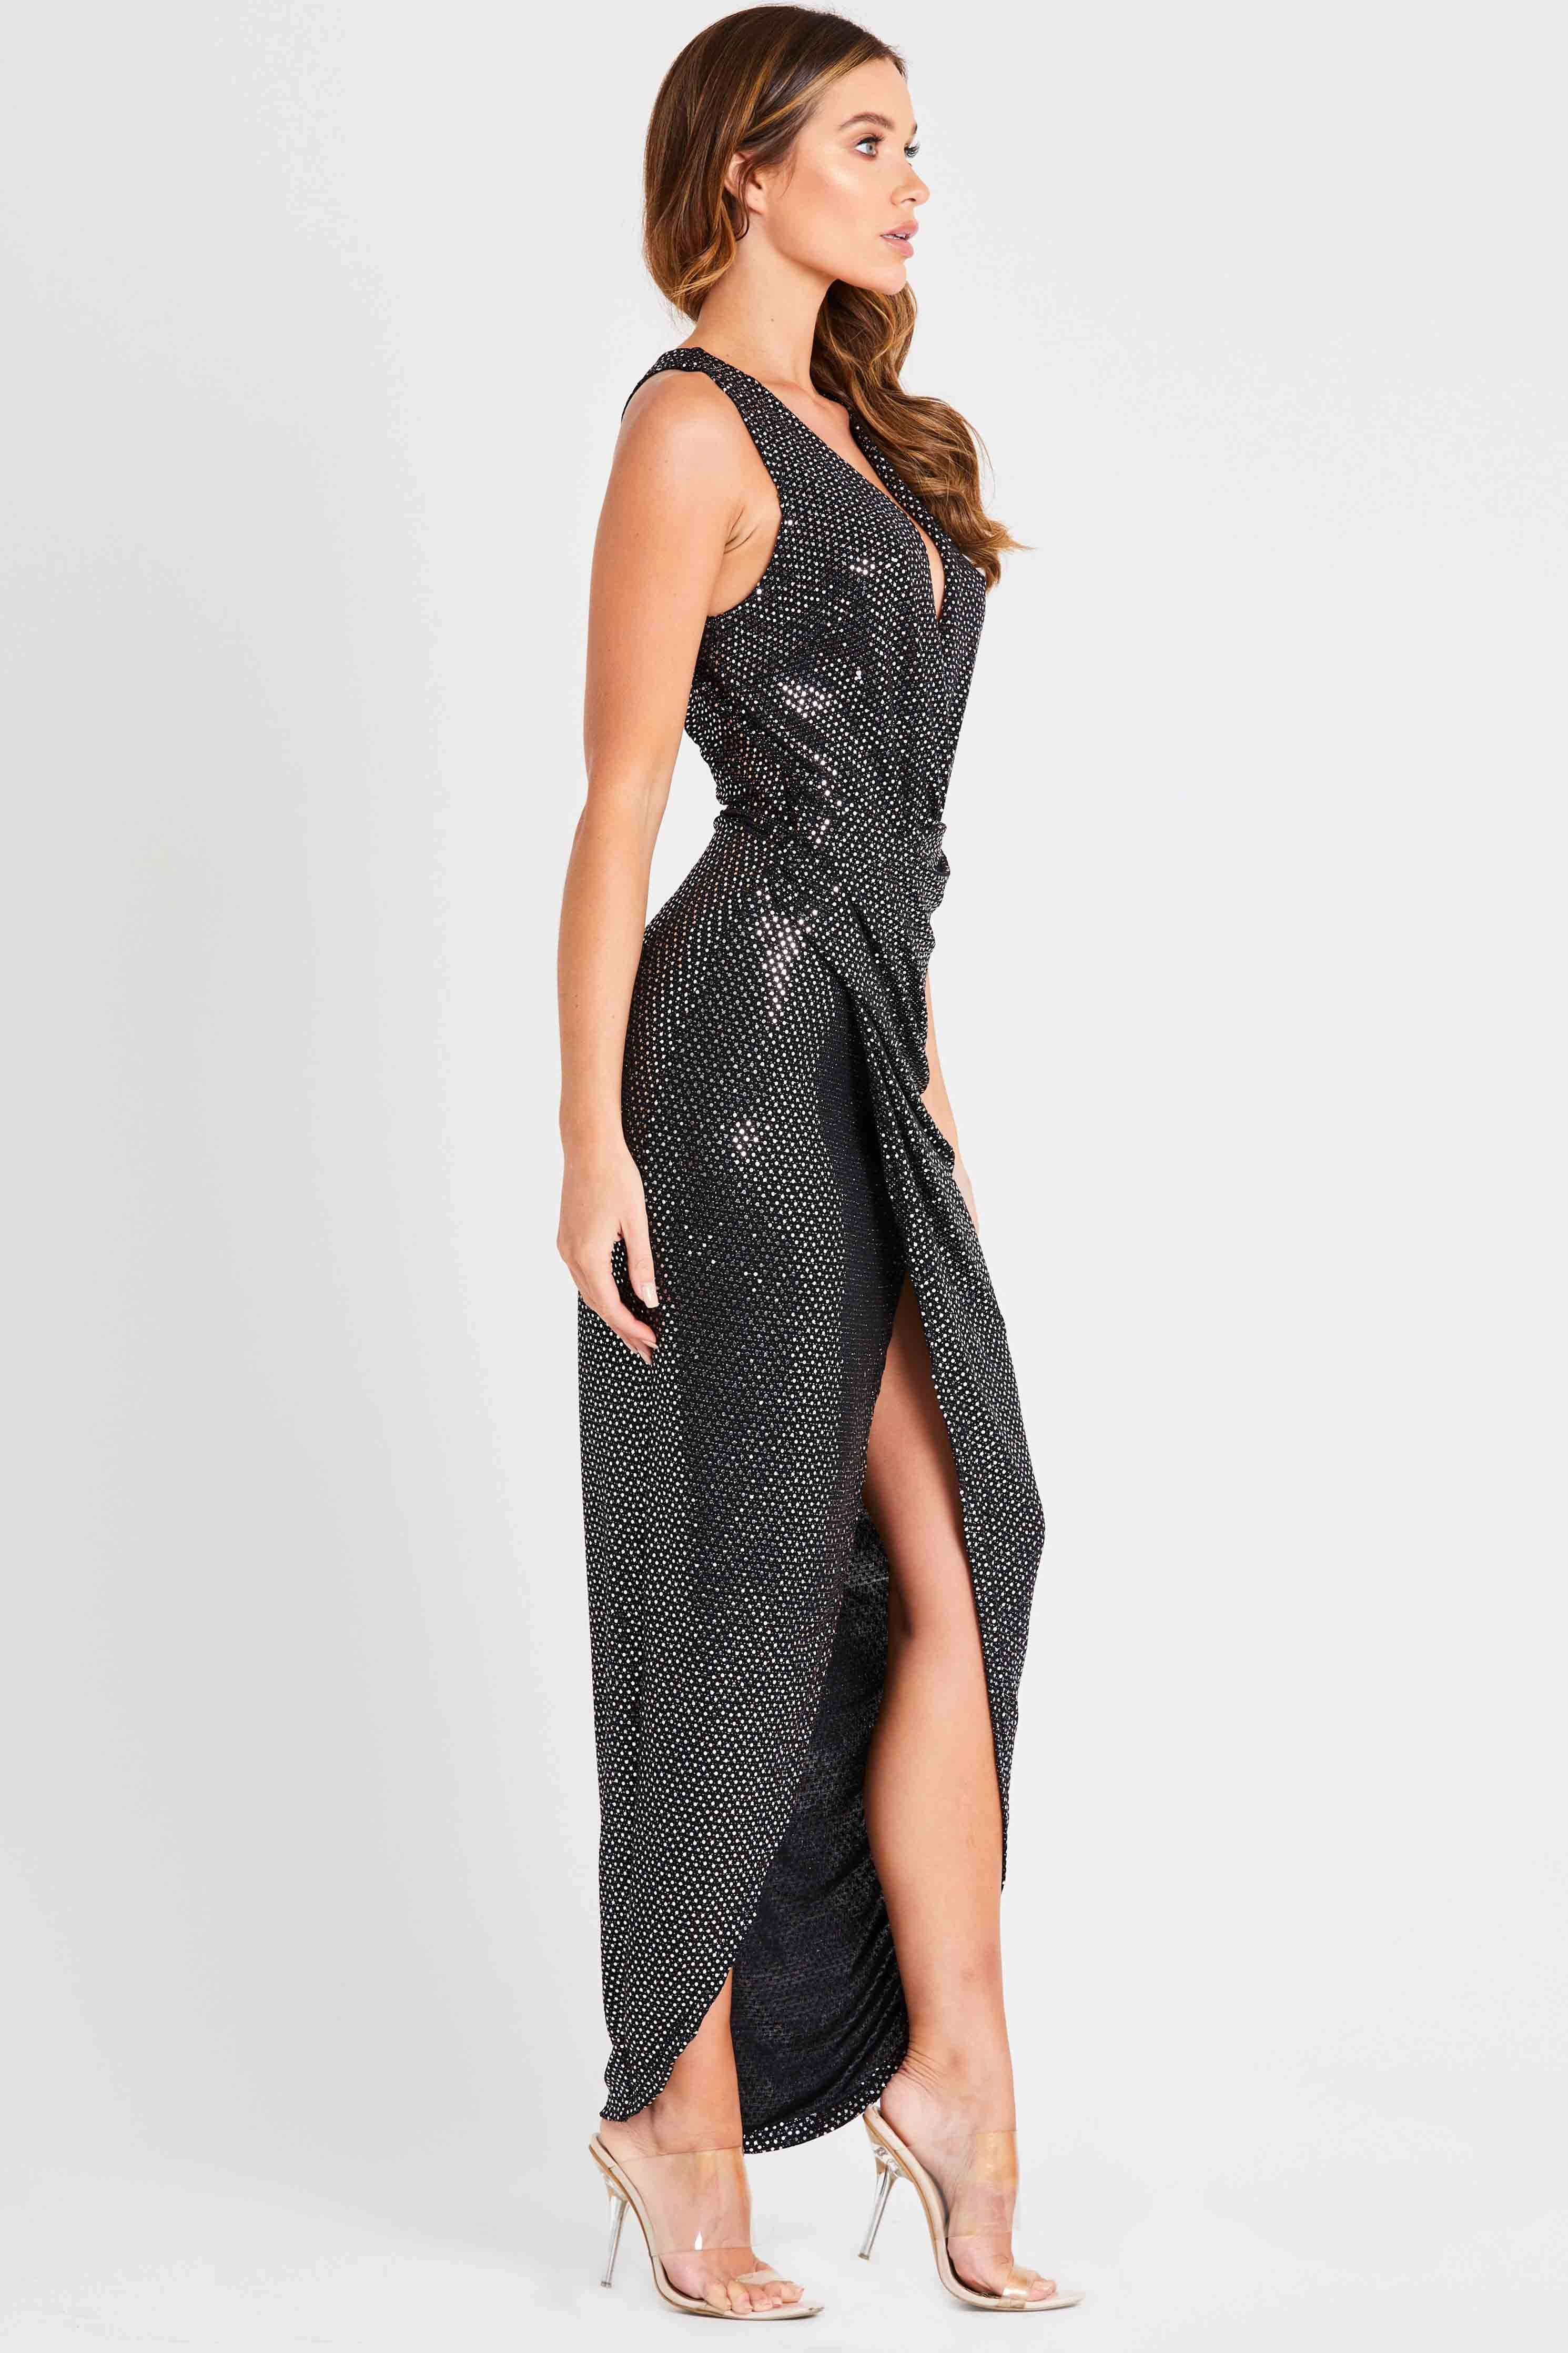 Skirt Amp Stiletto Alessandra Black Wrap Sequin Maxi Dress